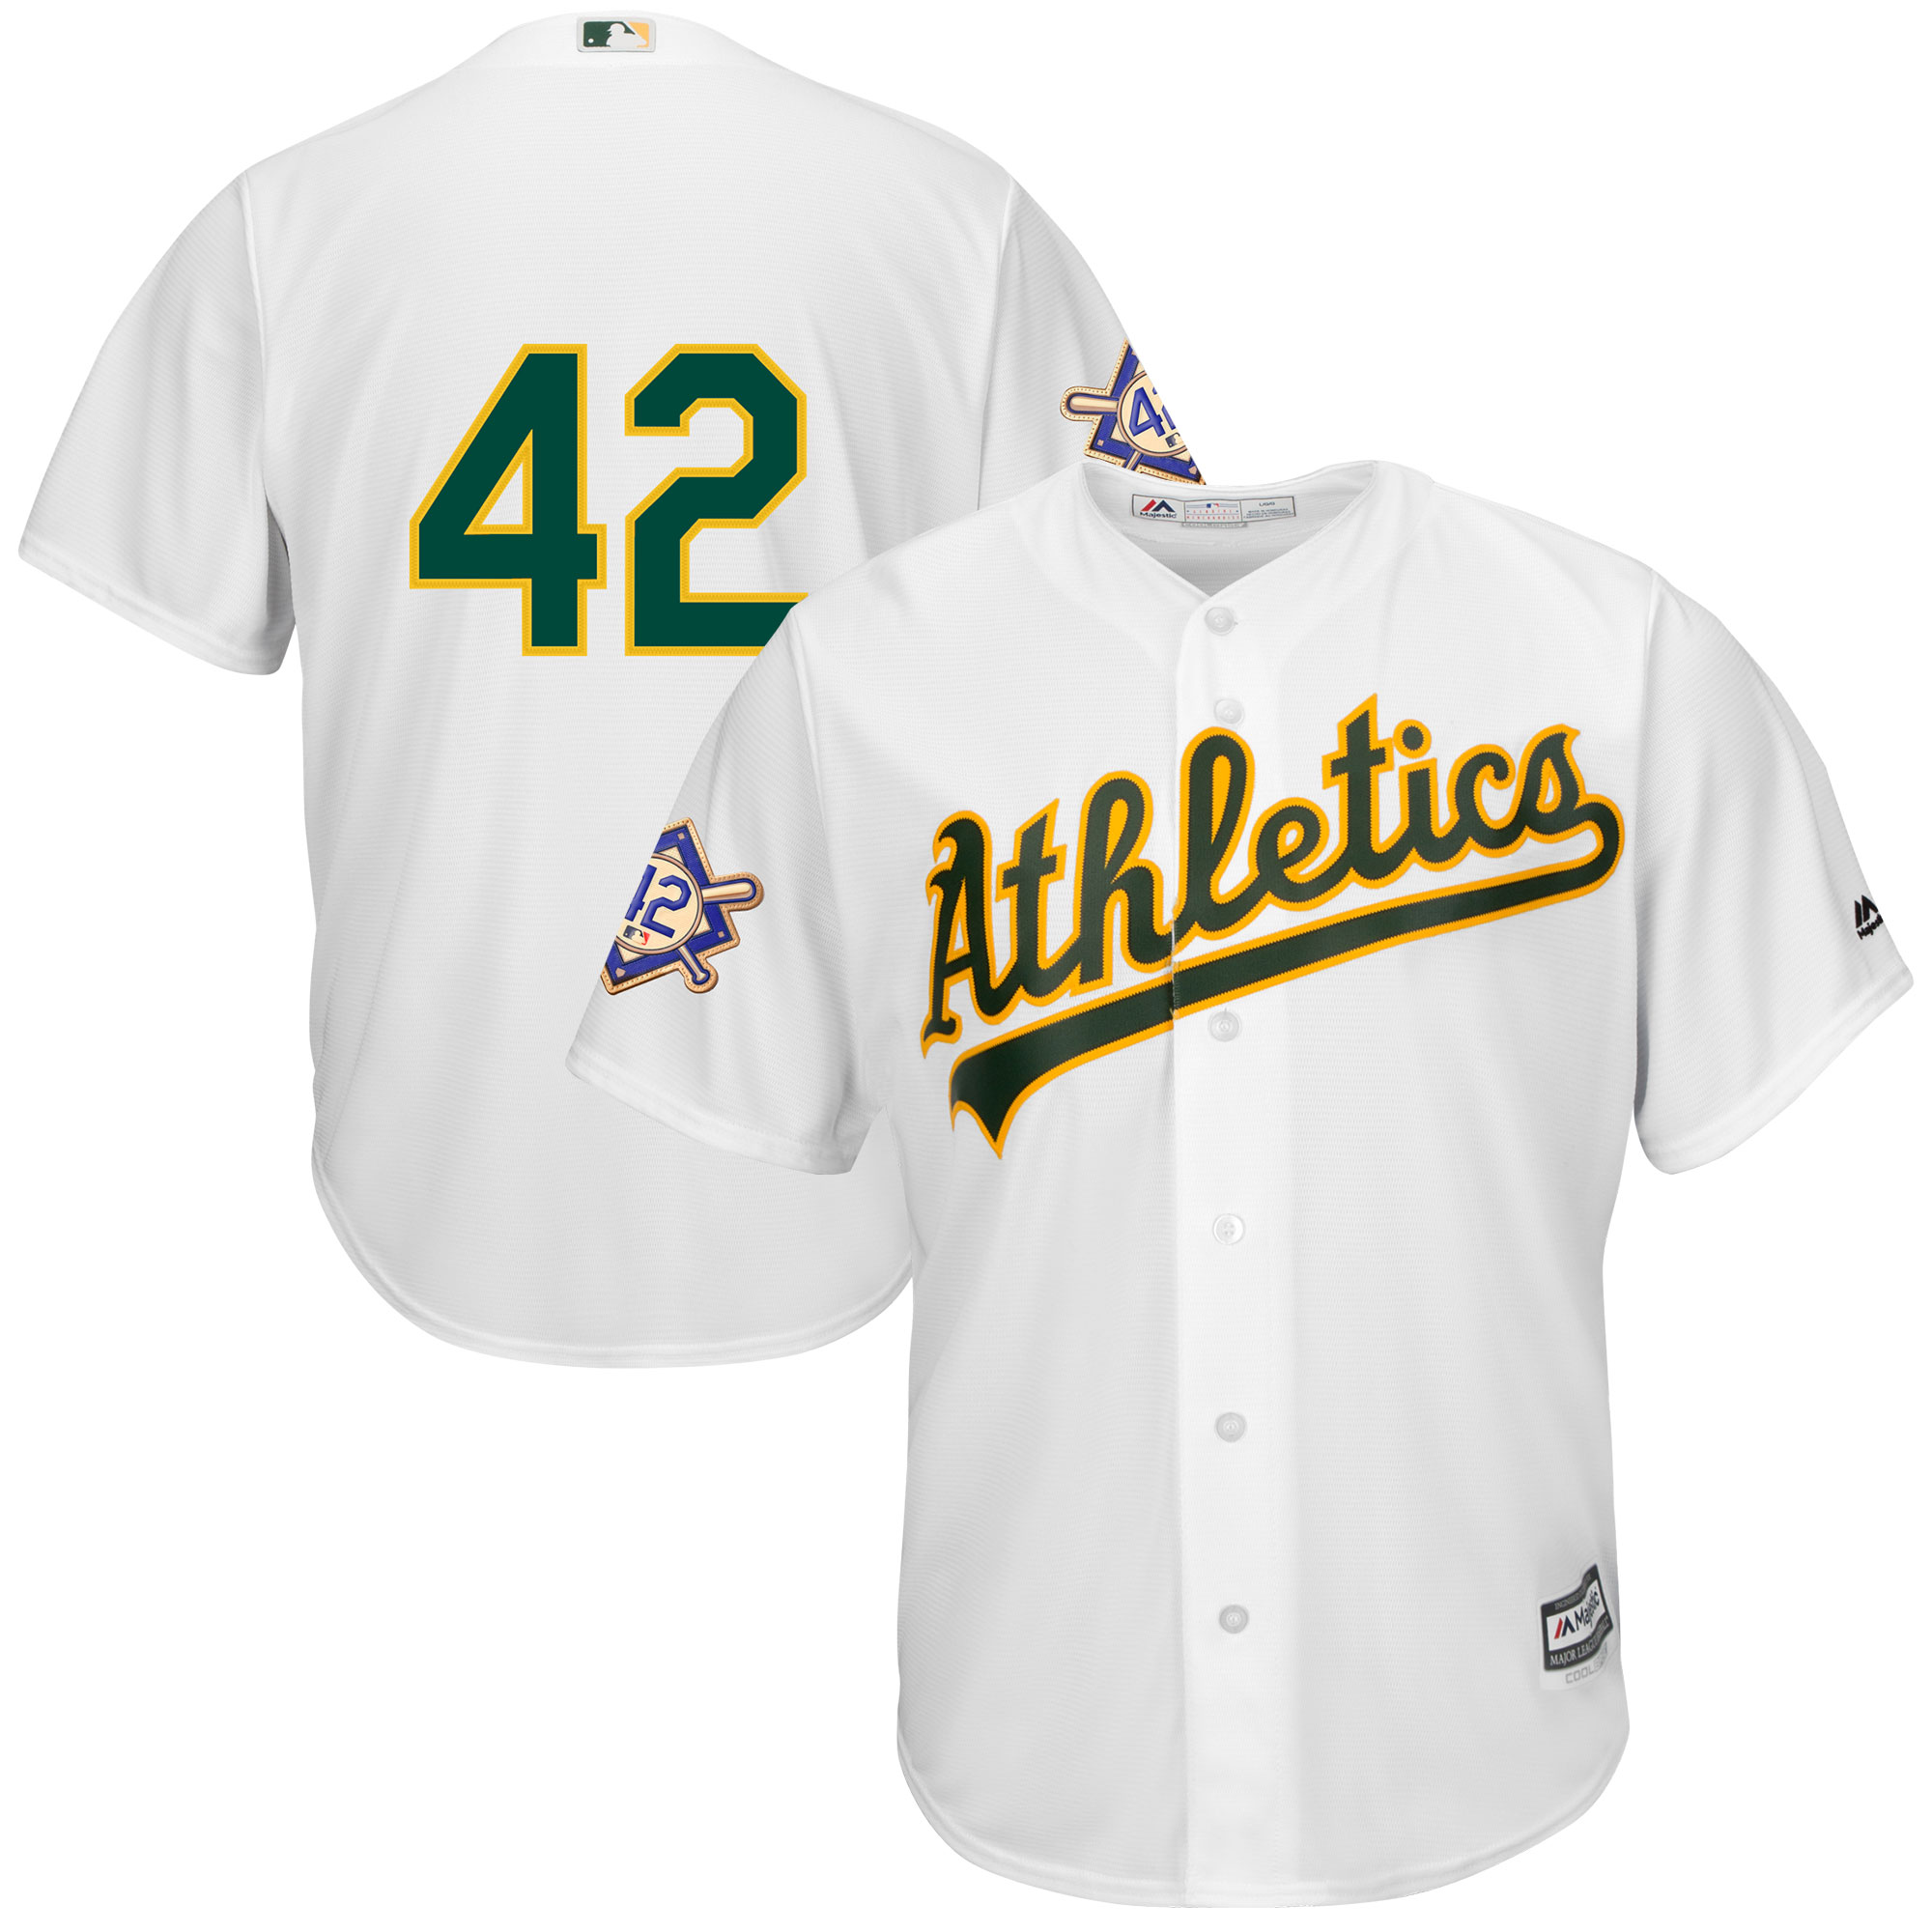 detailed look dee86 65364 Oakland Athletics Majestic 2019 Jackie Robinson Day Official Cool Base  Jersey - White